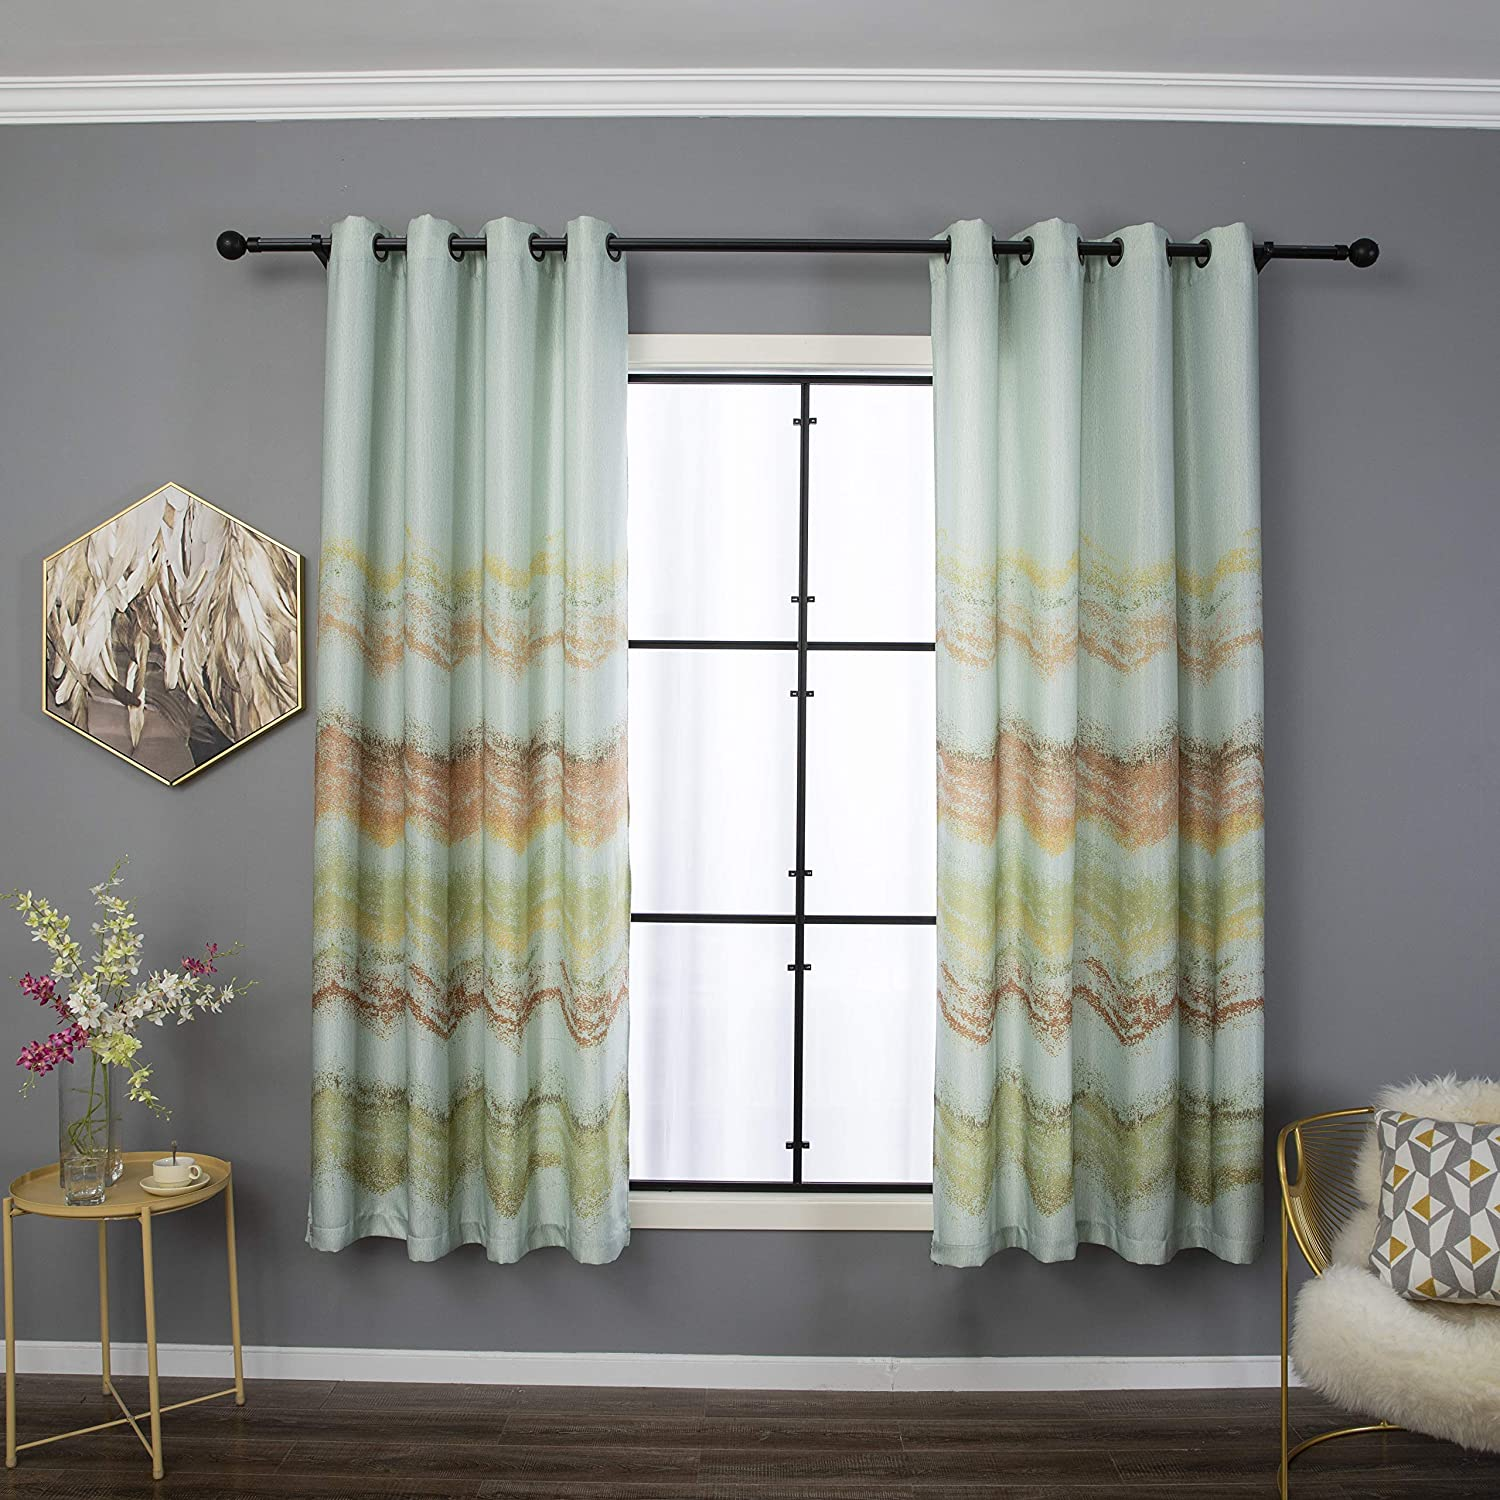 Taisier Home Watercolor Rainbow Windows Curtains Room Darkening Colorful Nature Abstract Art Crayon Gradient for Living Room Bedroom Window Drapes Printed(2 Panels 52 x 84 Inch,Sky Blue